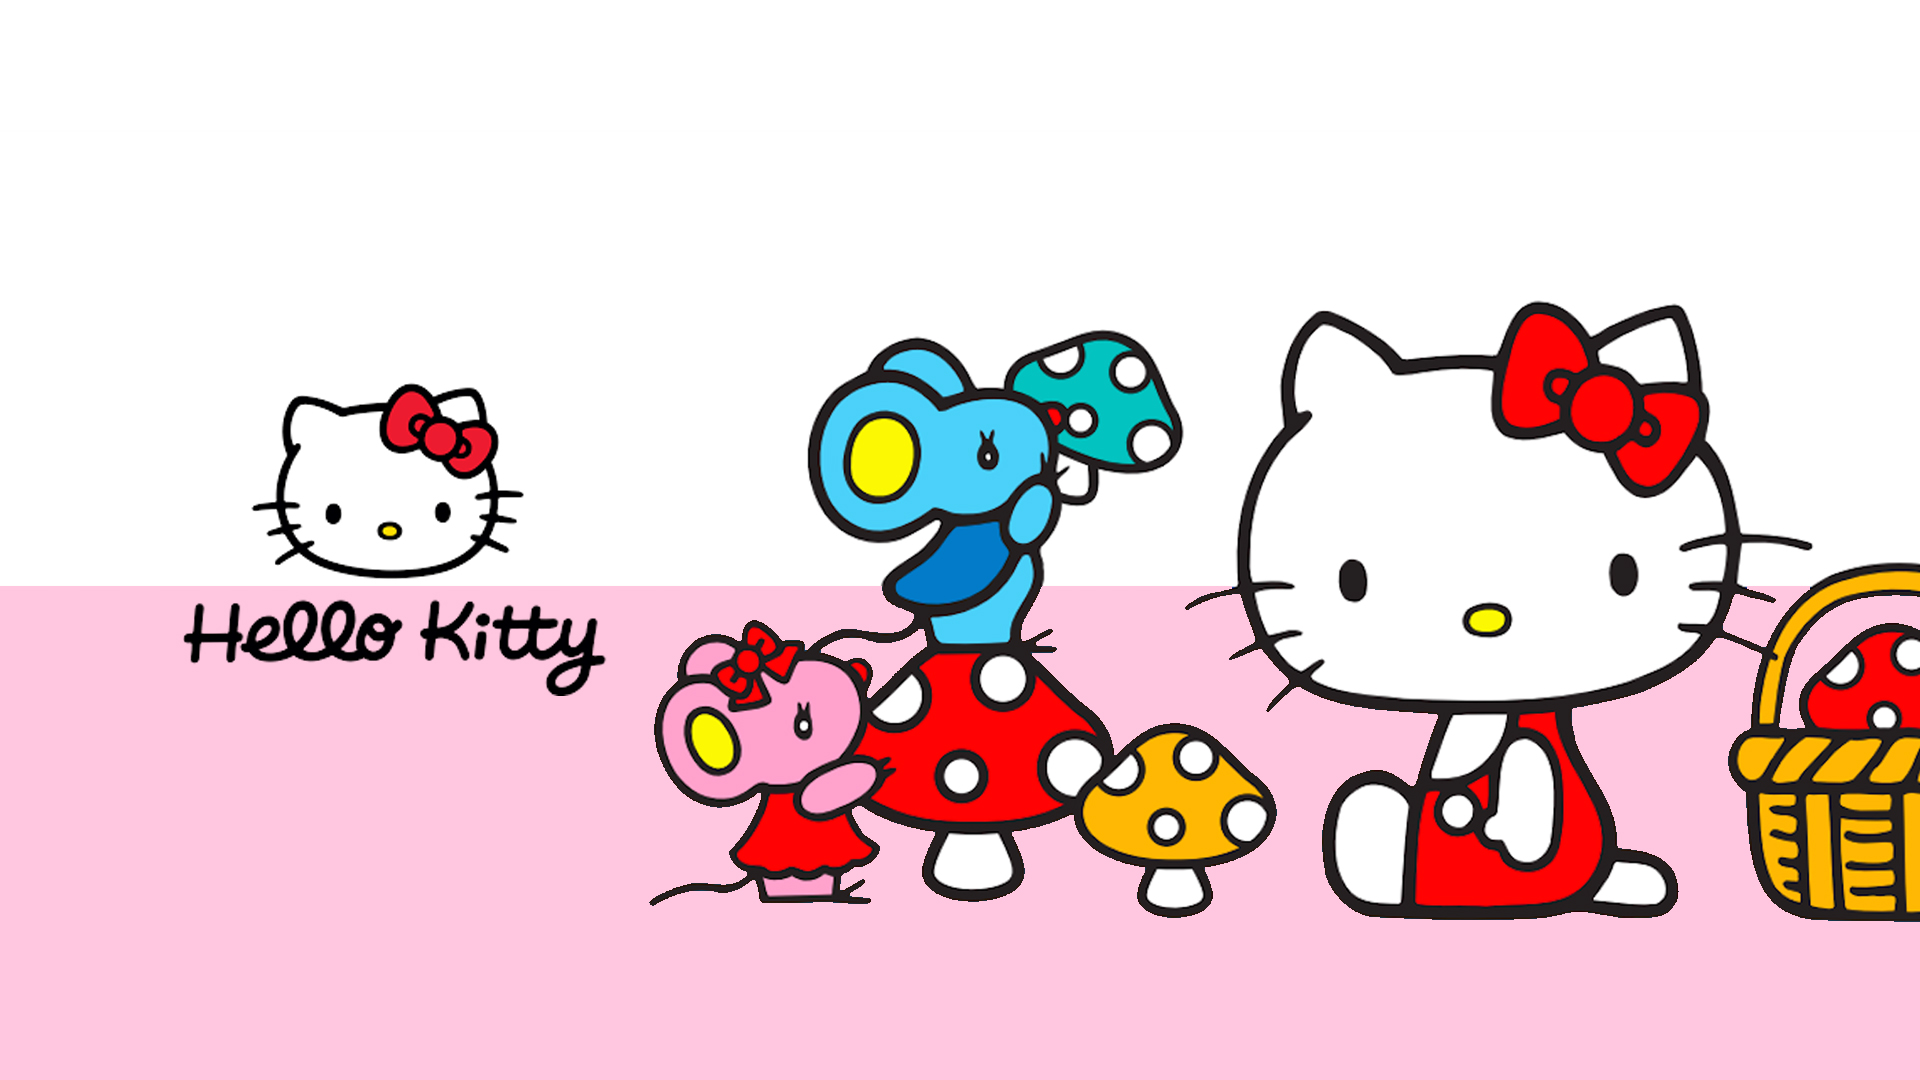 Banner pubblicitario Hello Kitty - Web agency Napoli - Libellula Grafica Lab